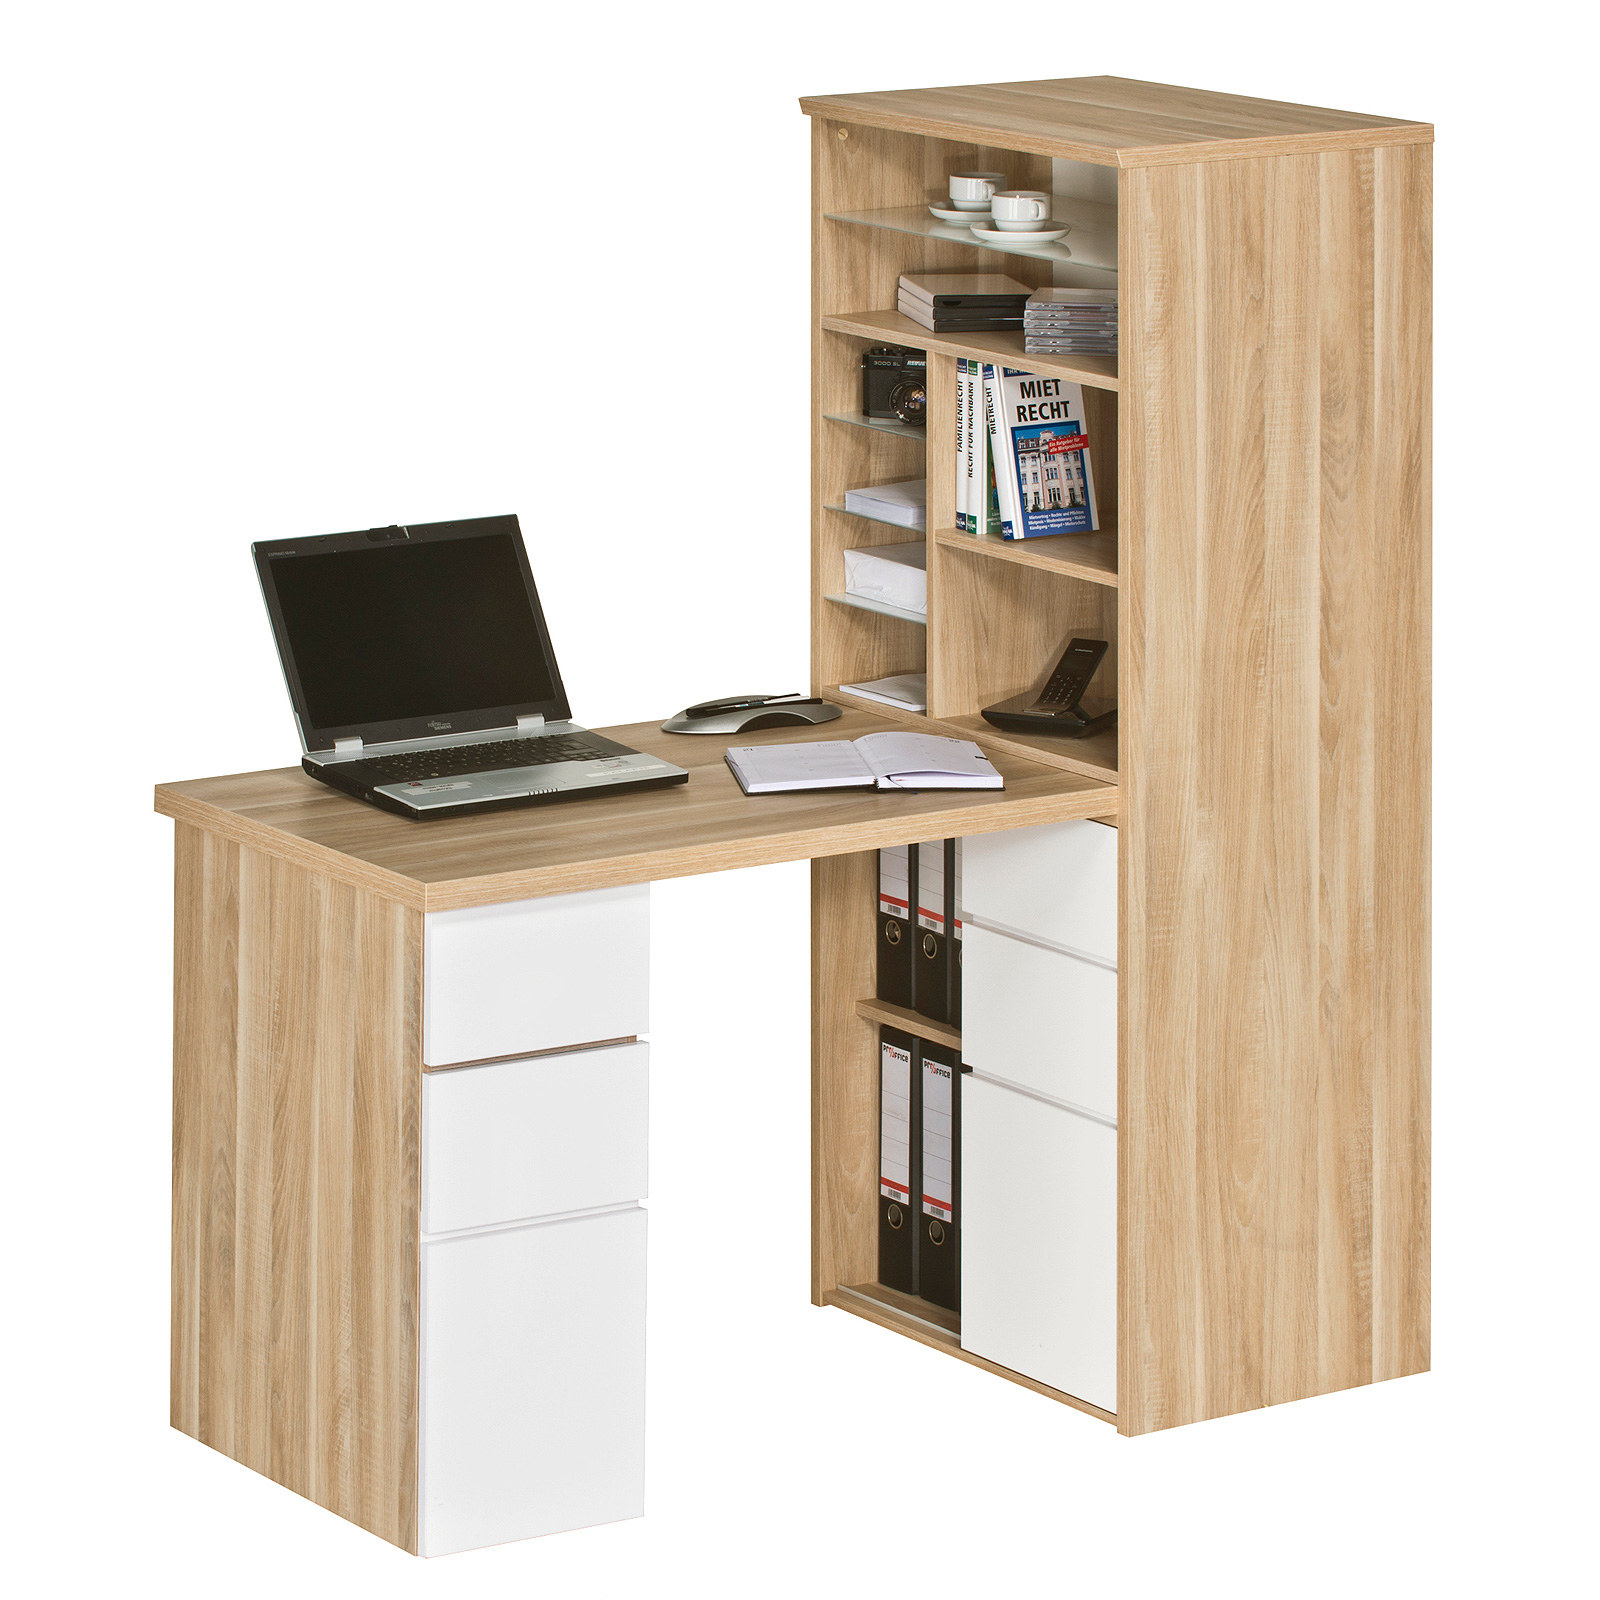 mini office maja 9562 schreibtischkombi regal schreibtisch farbauswahl ebay. Black Bedroom Furniture Sets. Home Design Ideas